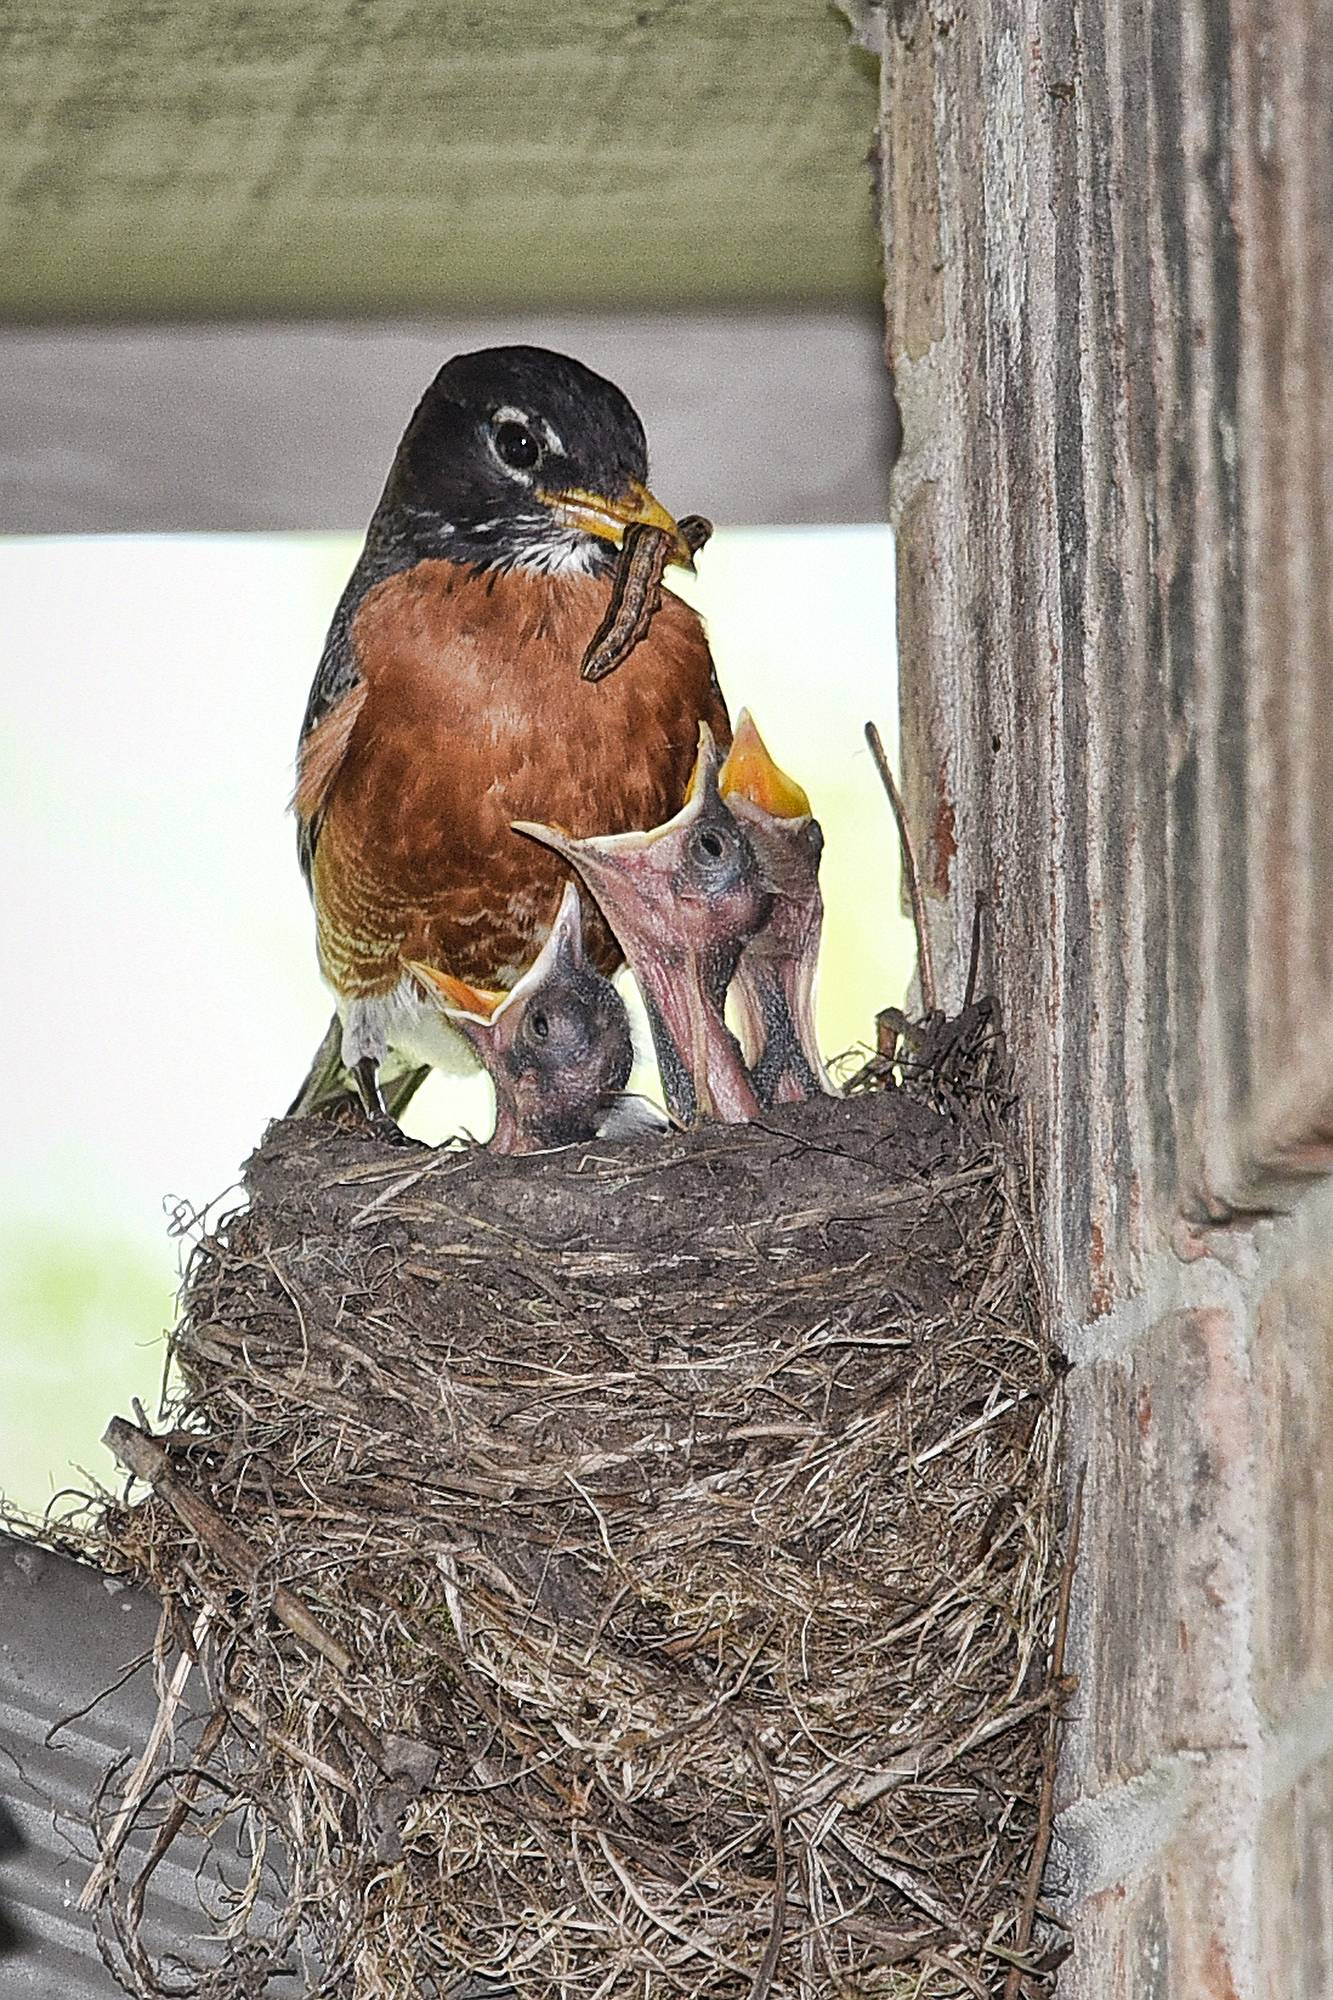 The robins made a nest on my downspout gutter. 3 baby robins started popping up their heads when either parent would bring a worm to eat. I think the robin was deciding which of the 3 to give it to. Is is quite enjoyable to see the mom and pop robin taking care of their newborns. I would title this (Lunch Time).